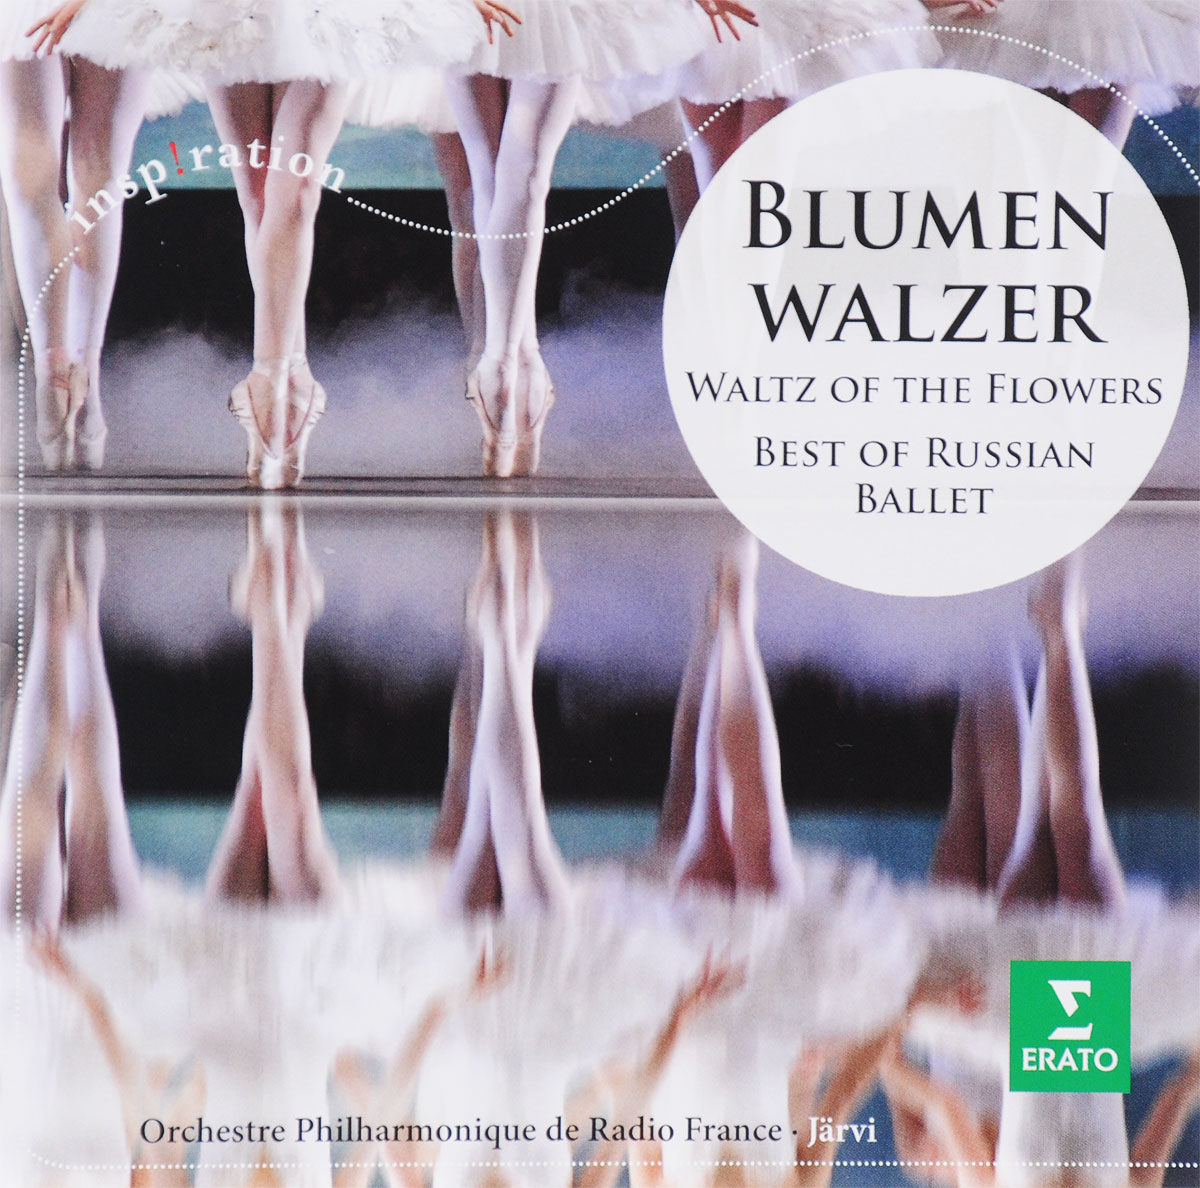 Паво Джарви,Orchestre Philharmonique De Radio France,State Academic Mariinsky Theatre Choir Paavo Jarvi, Orchestre Philharmonique De Radio France. Waltz Of The Flowers. Best Of Russian Ballet комплект secret de maison вальс цветов waltz of flowers стол 2 стула доступные цвета бронза